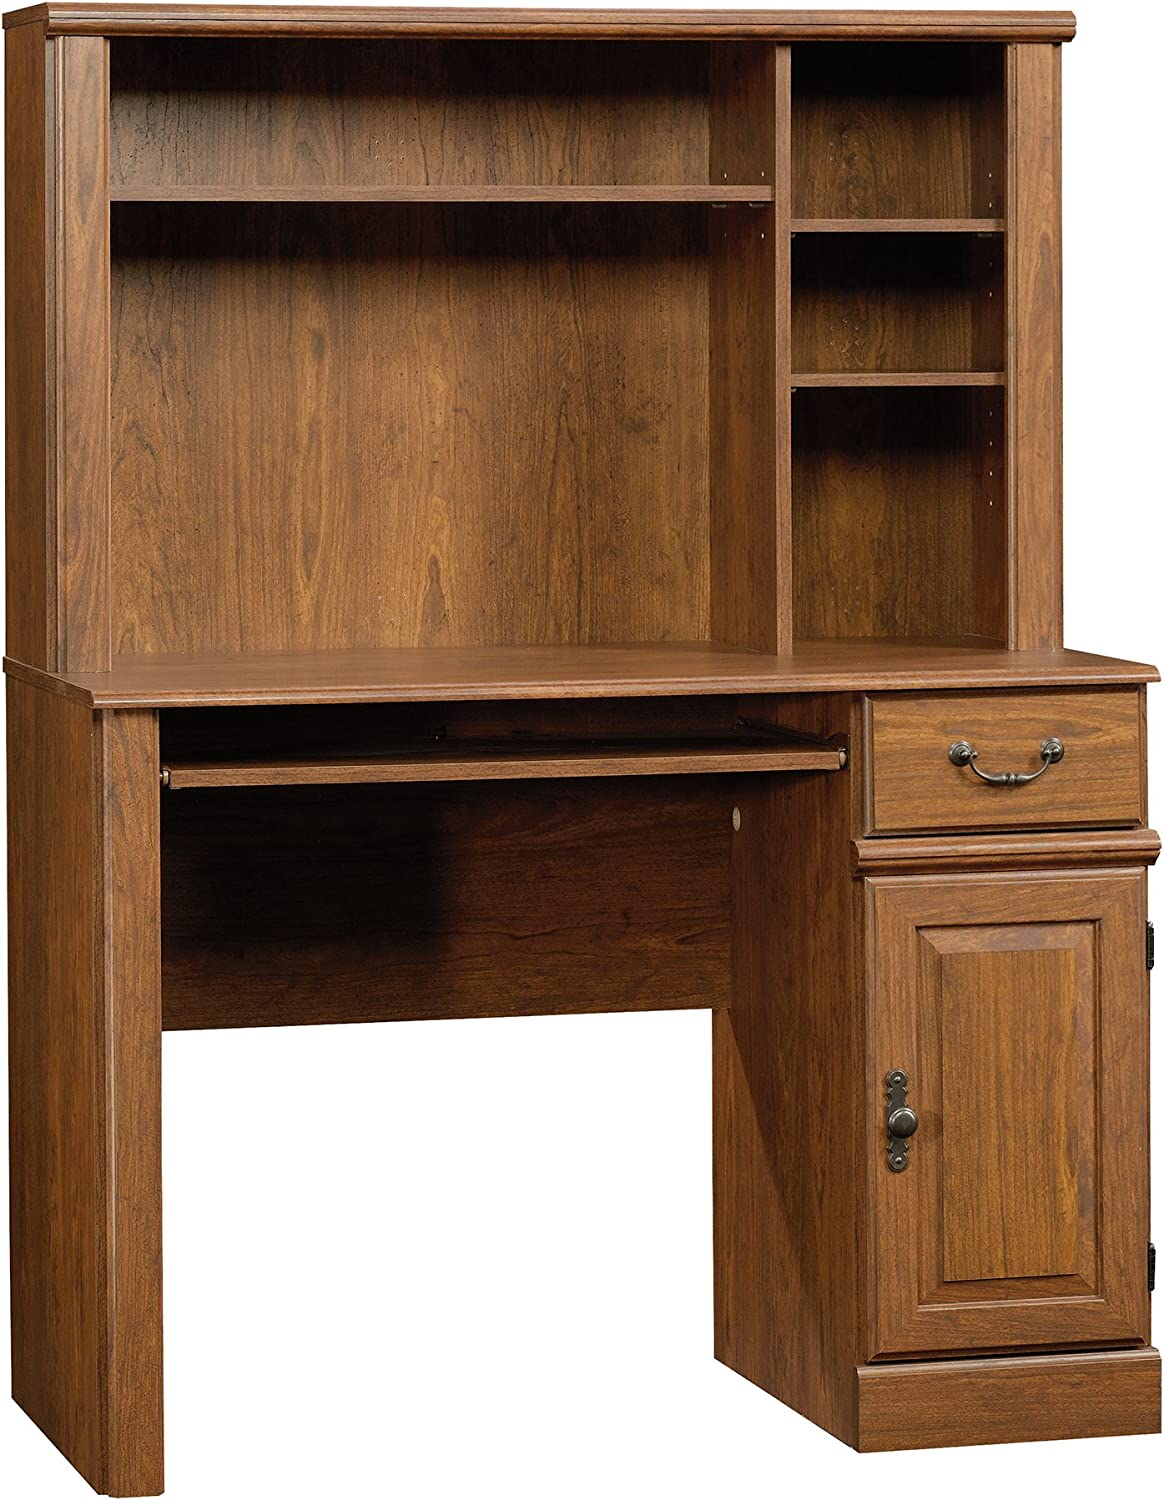 Sauder Orchard San Francisco Mall Hills Desk with Dealing full price reduction Cherry finish Hutch Milled